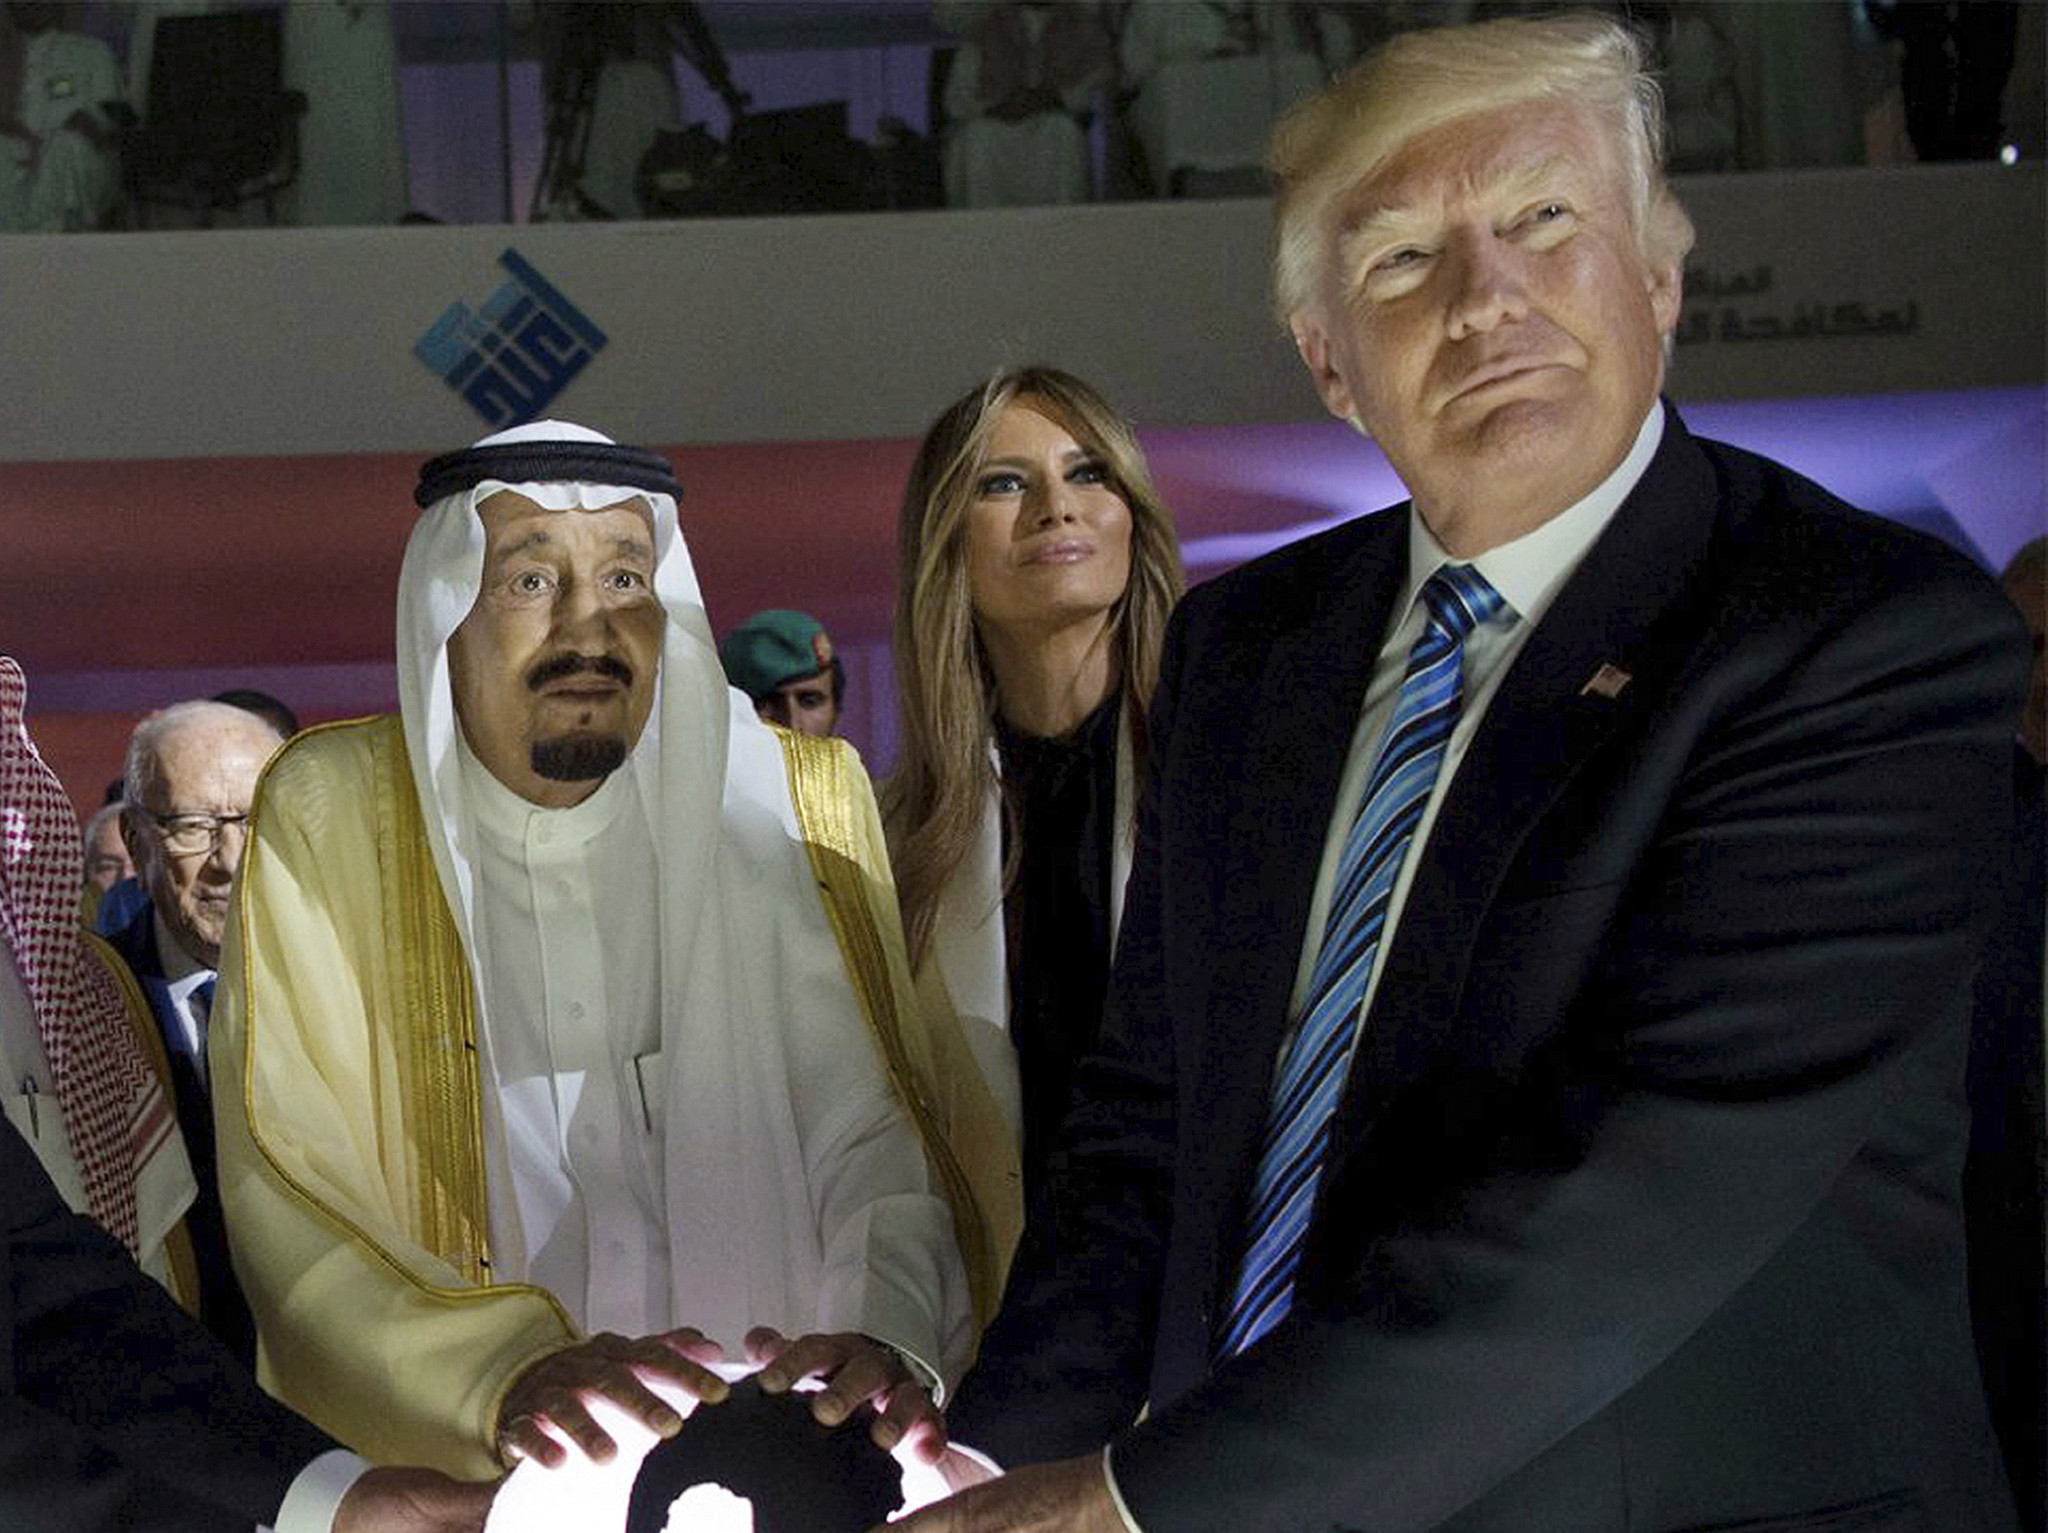 Trump says Saudi king called after Pensacola shooting to offer 'sympathies,' raising eyebrows about his ties to the kingdom